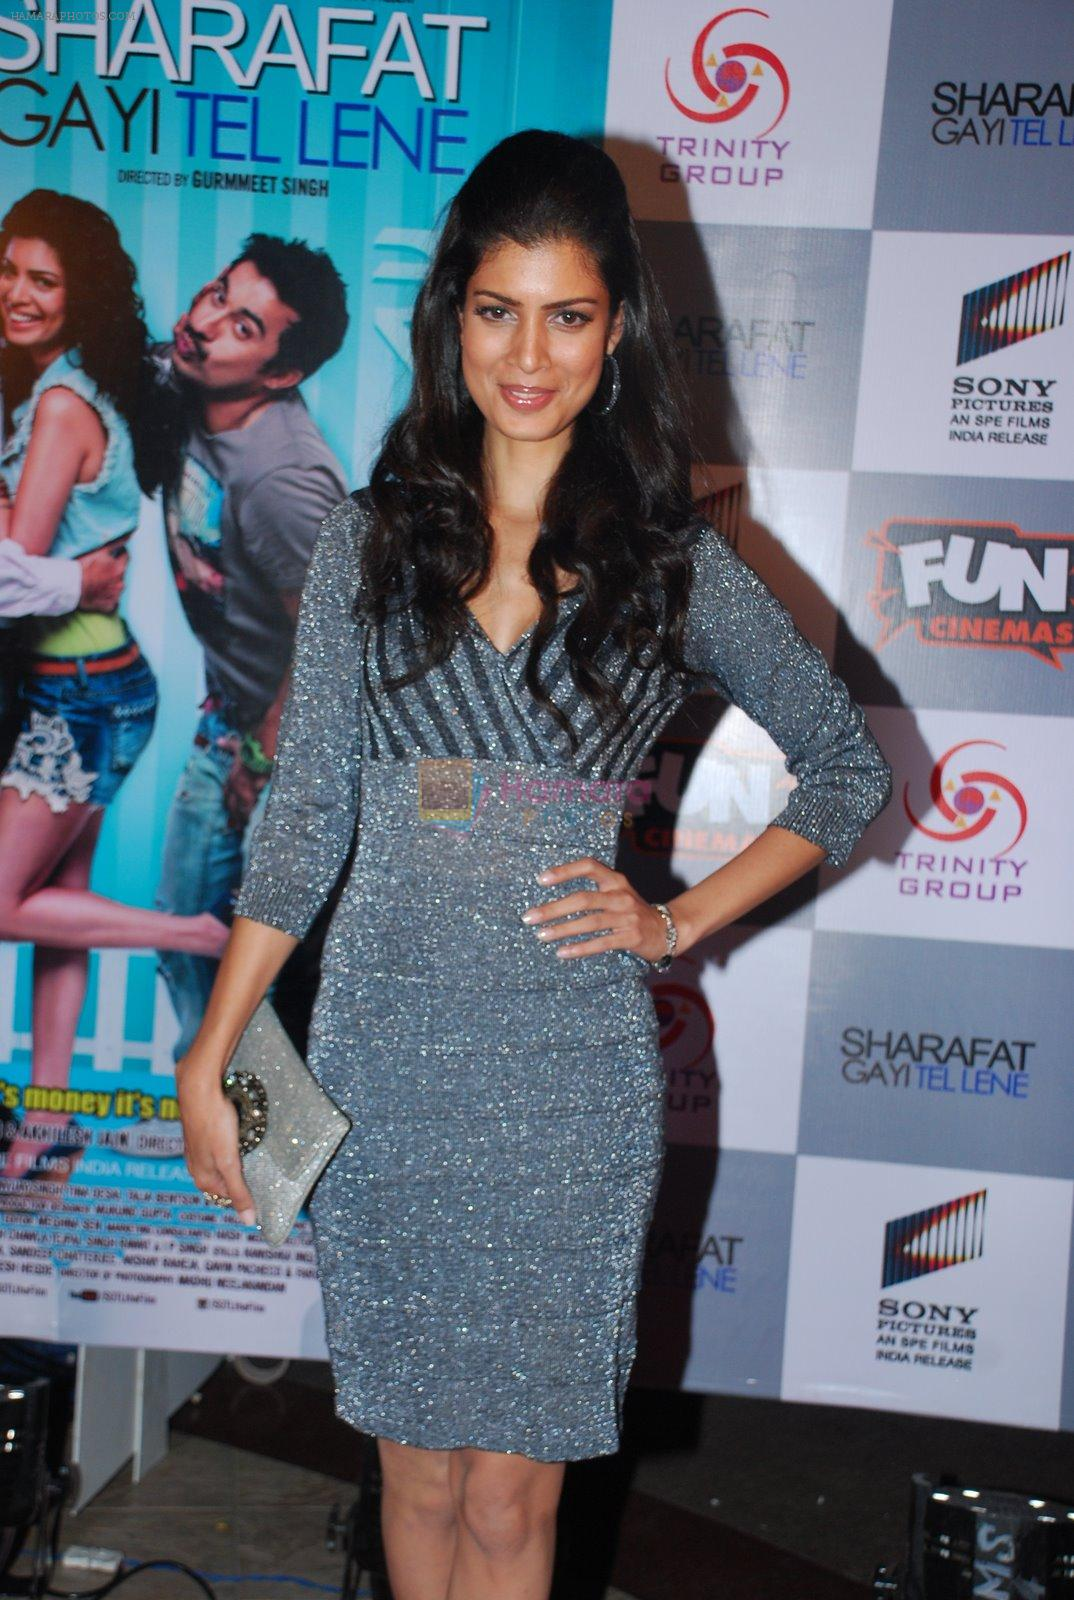 Tena Desae at the Premiere of Sharafat Gayi Tel Lene in Fun, Mumbai on 15th Jan 2015